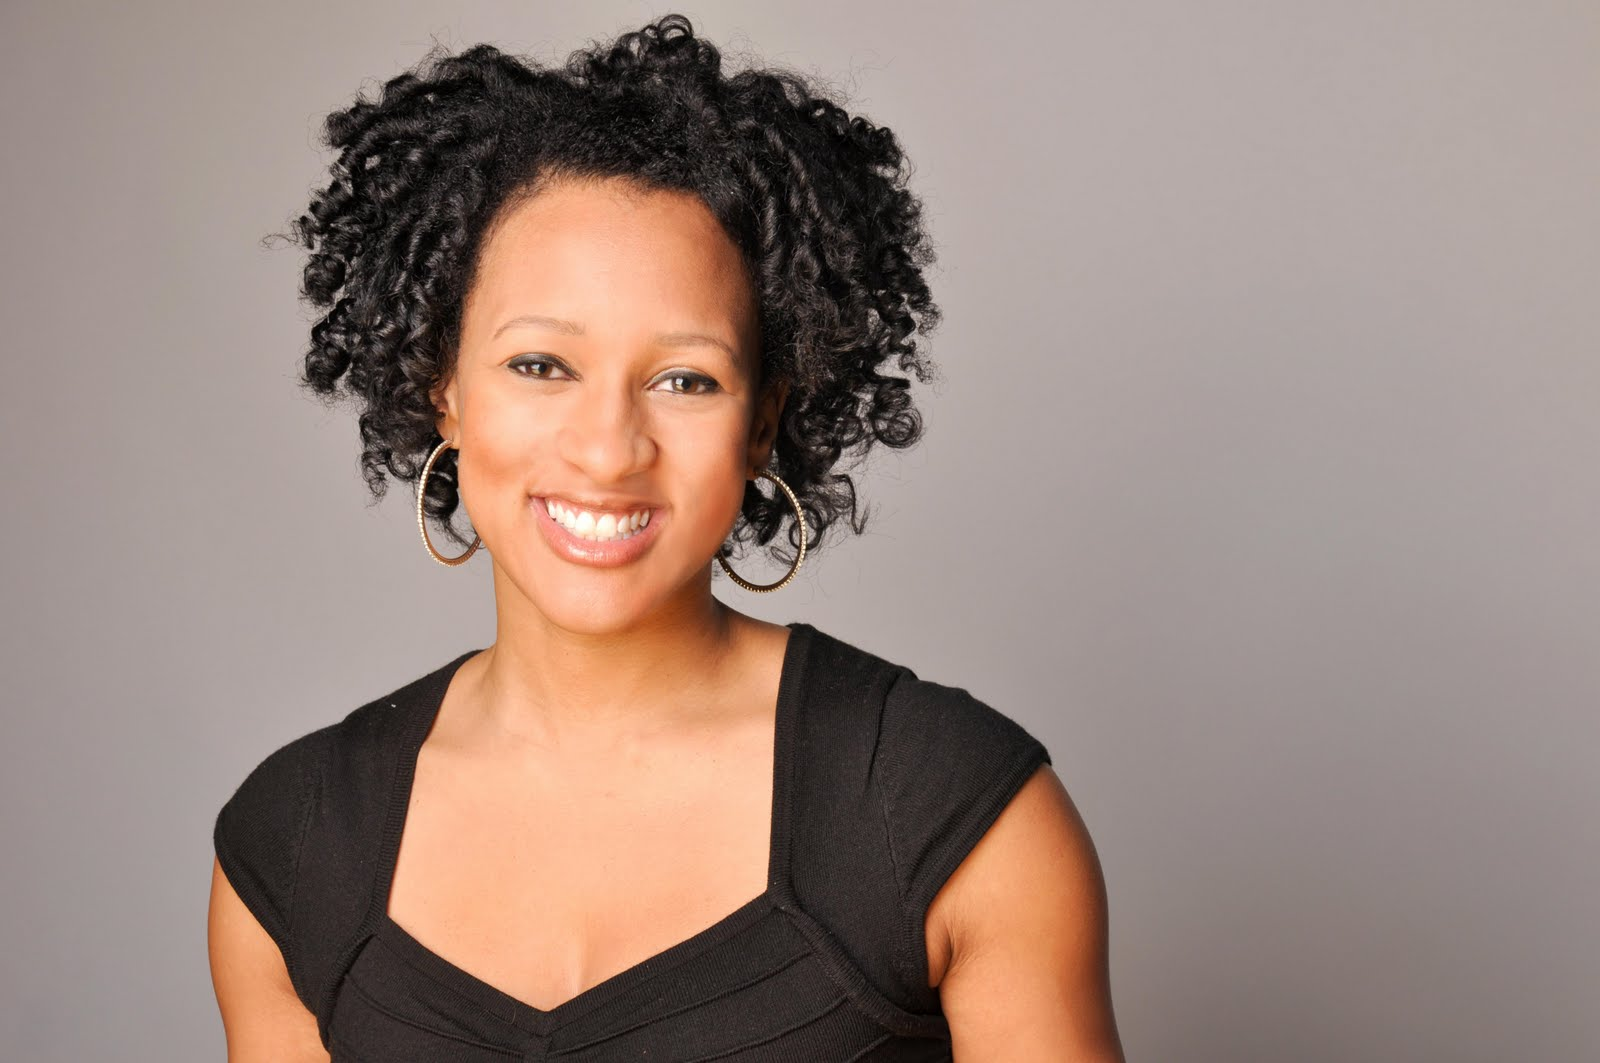 Post Black: Natural Hair: An Interview With Author Chris